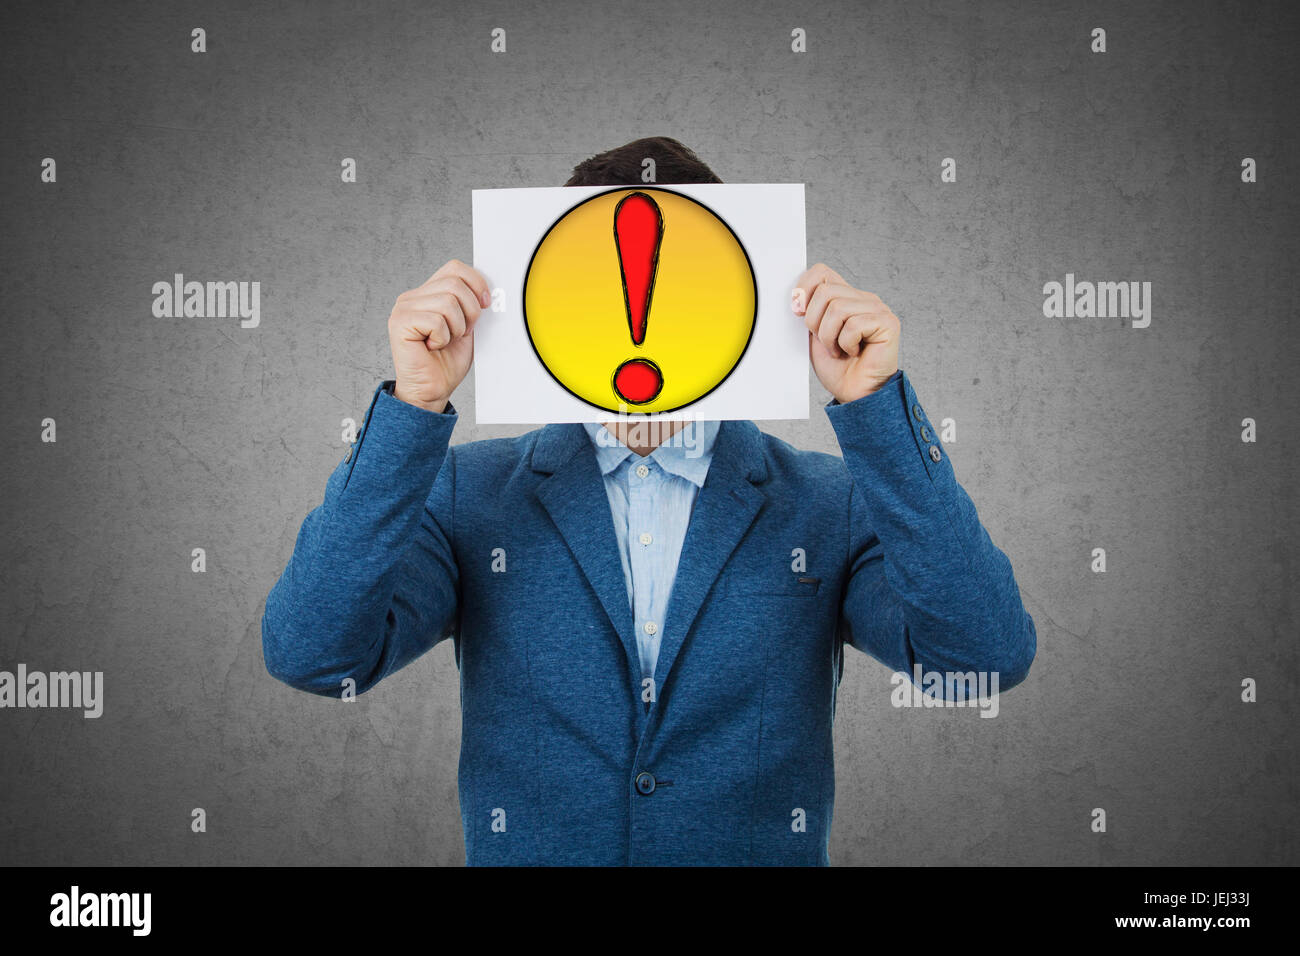 Businessman covering his face using a white paper with drawn question mark, like a mask, for hiding his identity. - Stock Image